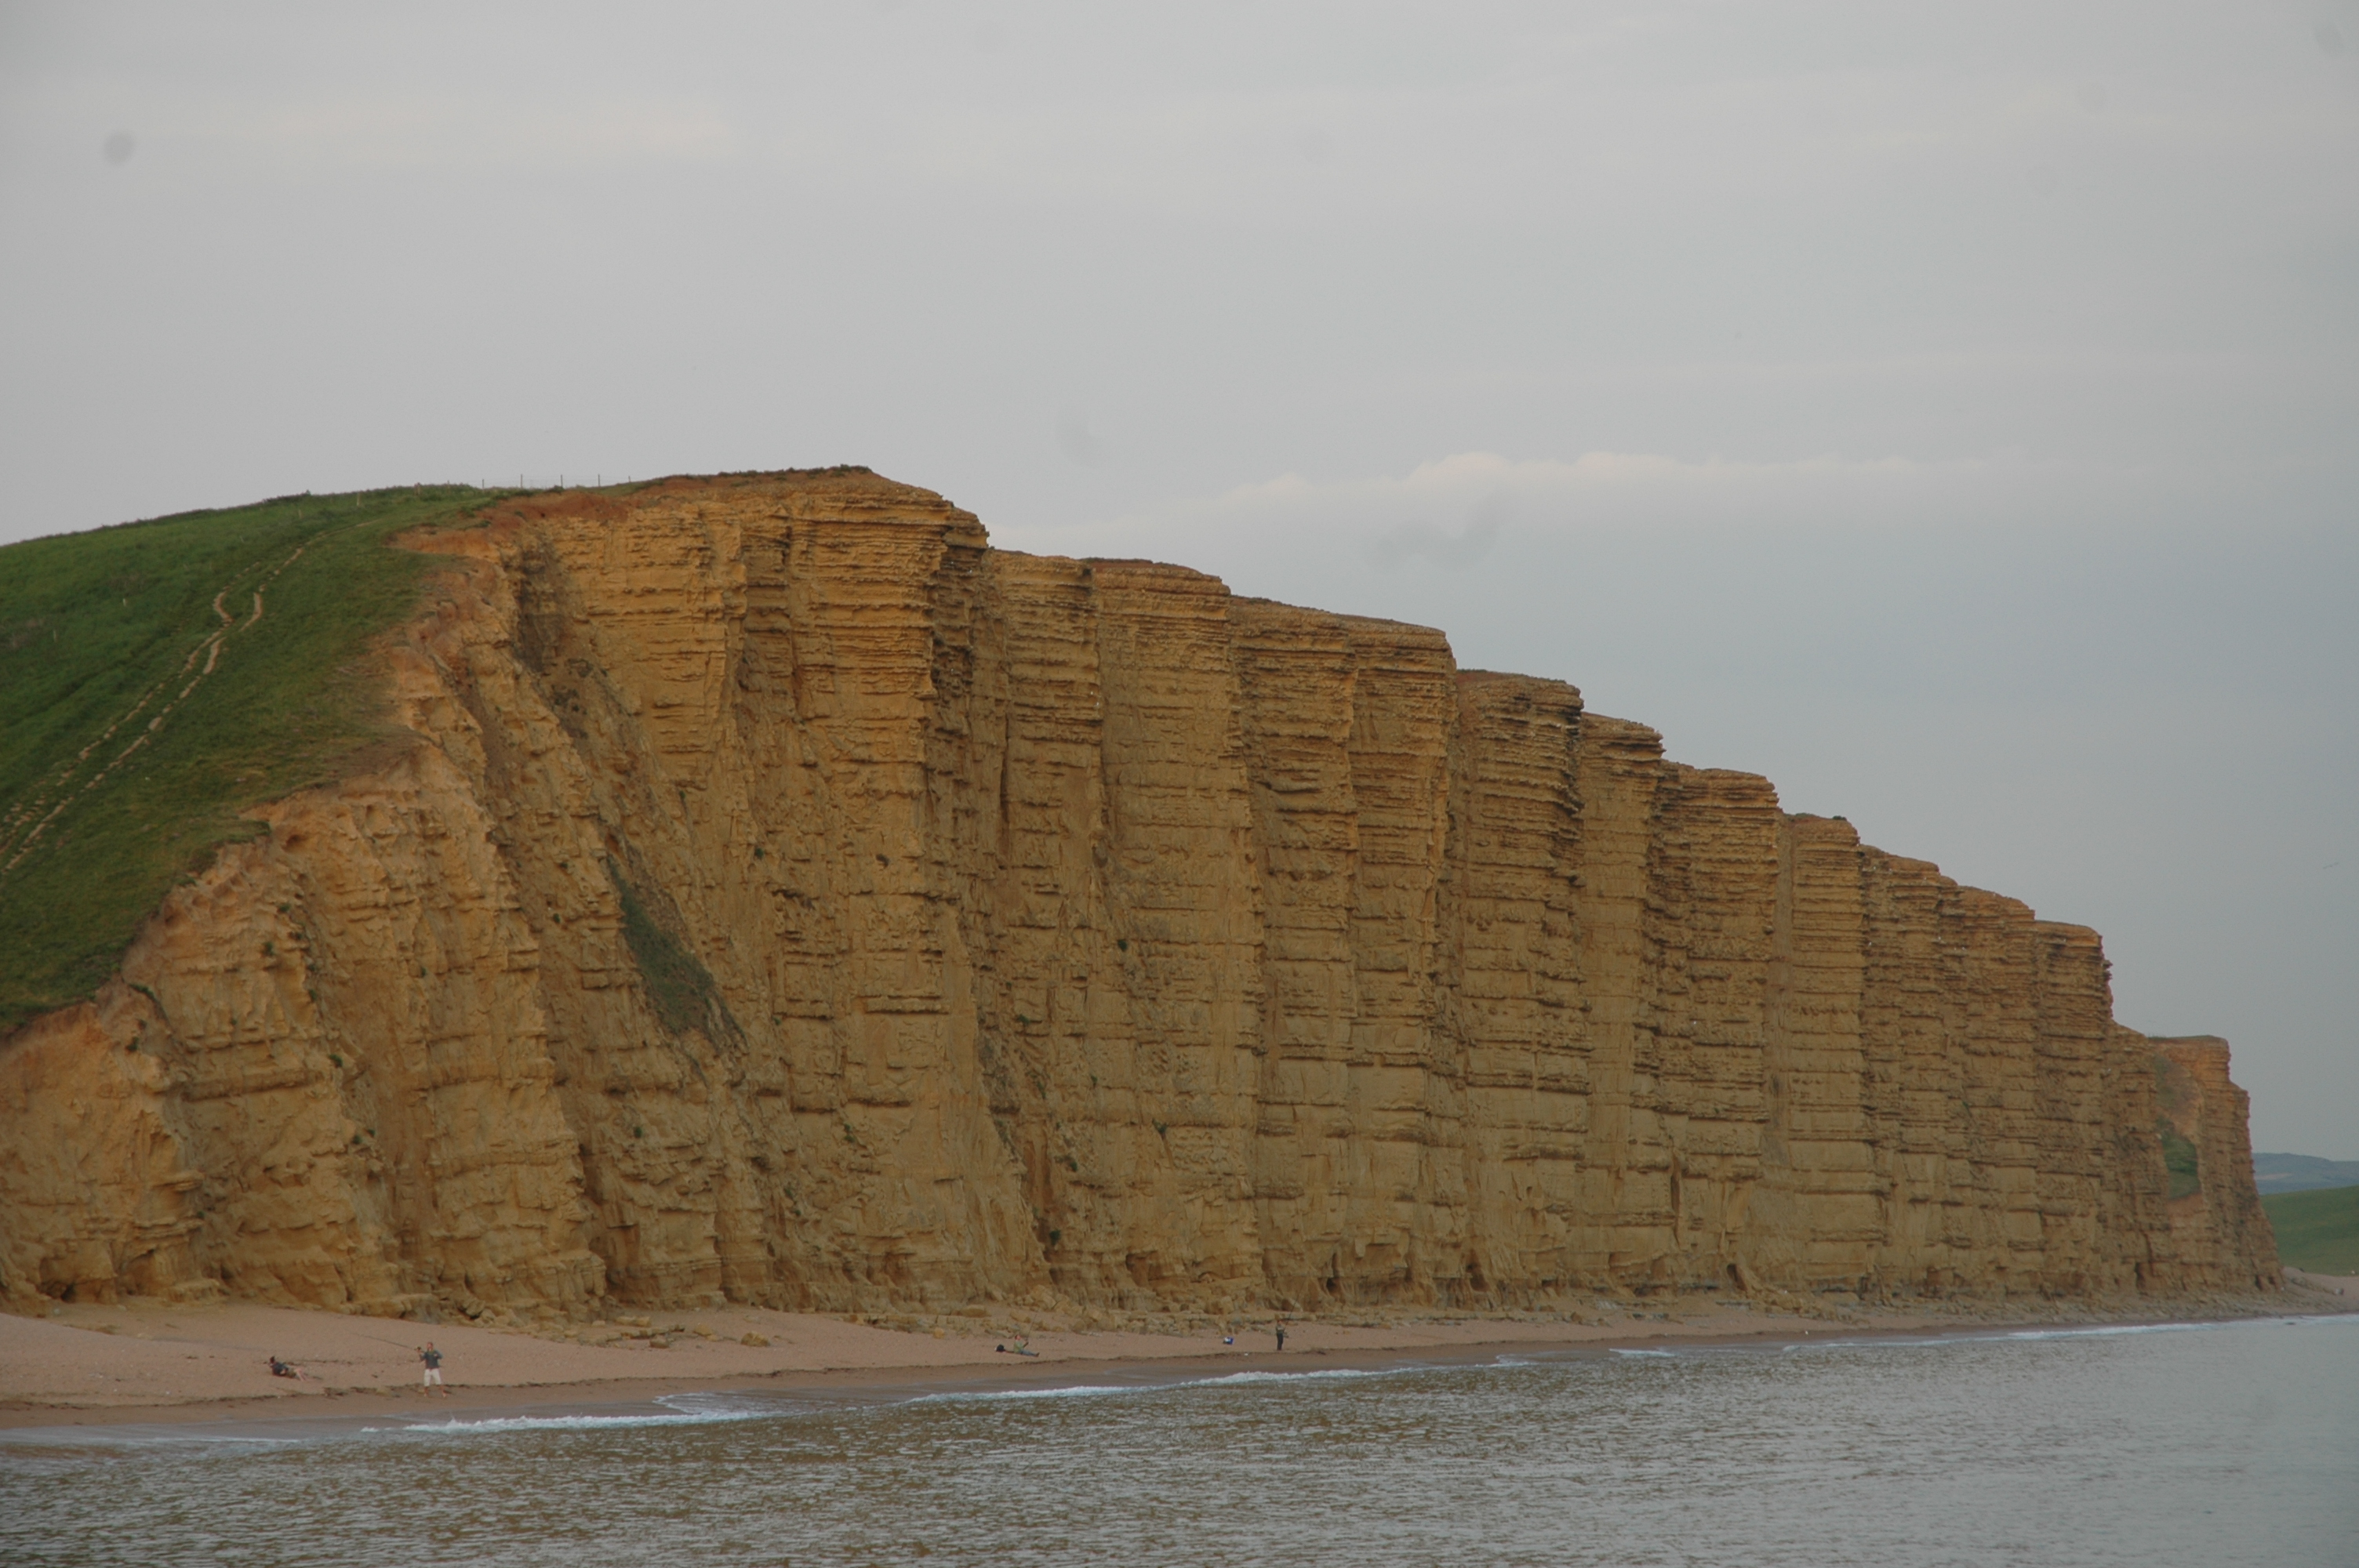 Lower Jurassic Bridport Sands in the cliffs at West Bay, Dorset. Note the alternating soft and hard layers, created by carbonate cement precipitated in the sand.